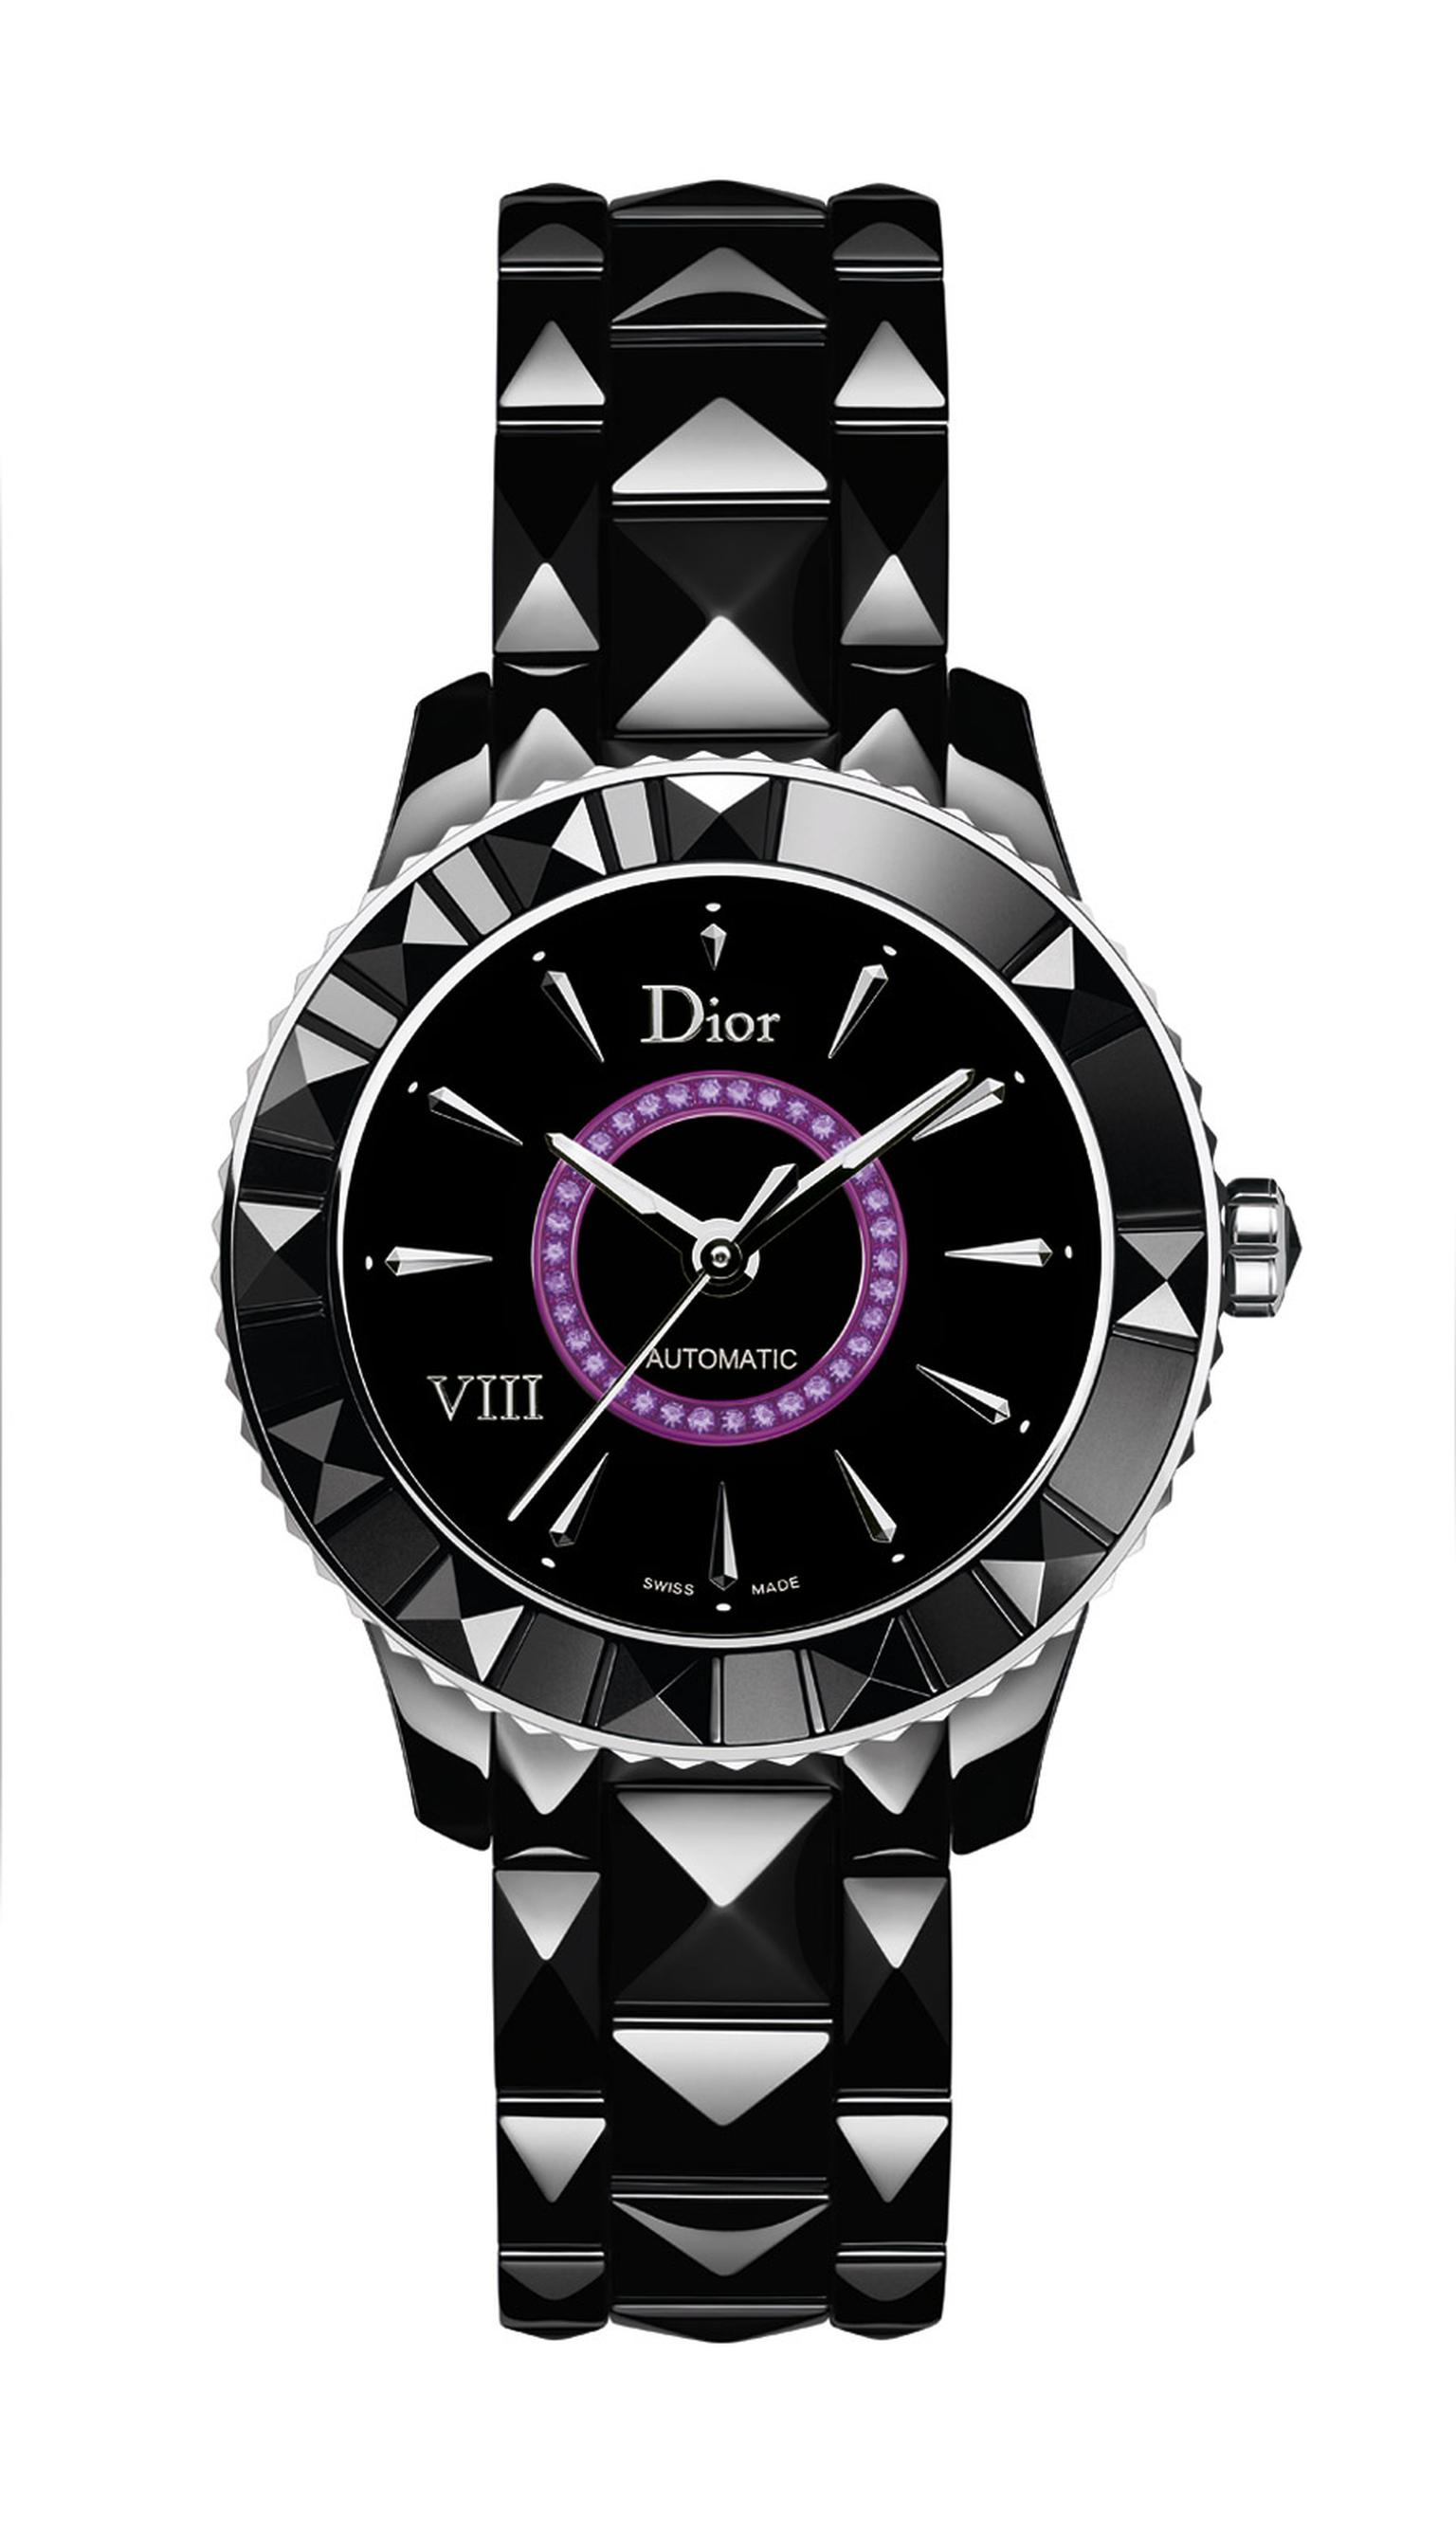 DIOR-VIII-BLACK-AUTO-COLOURED-CIRCLE-DIAL-AMETHYST-38mm.jpg